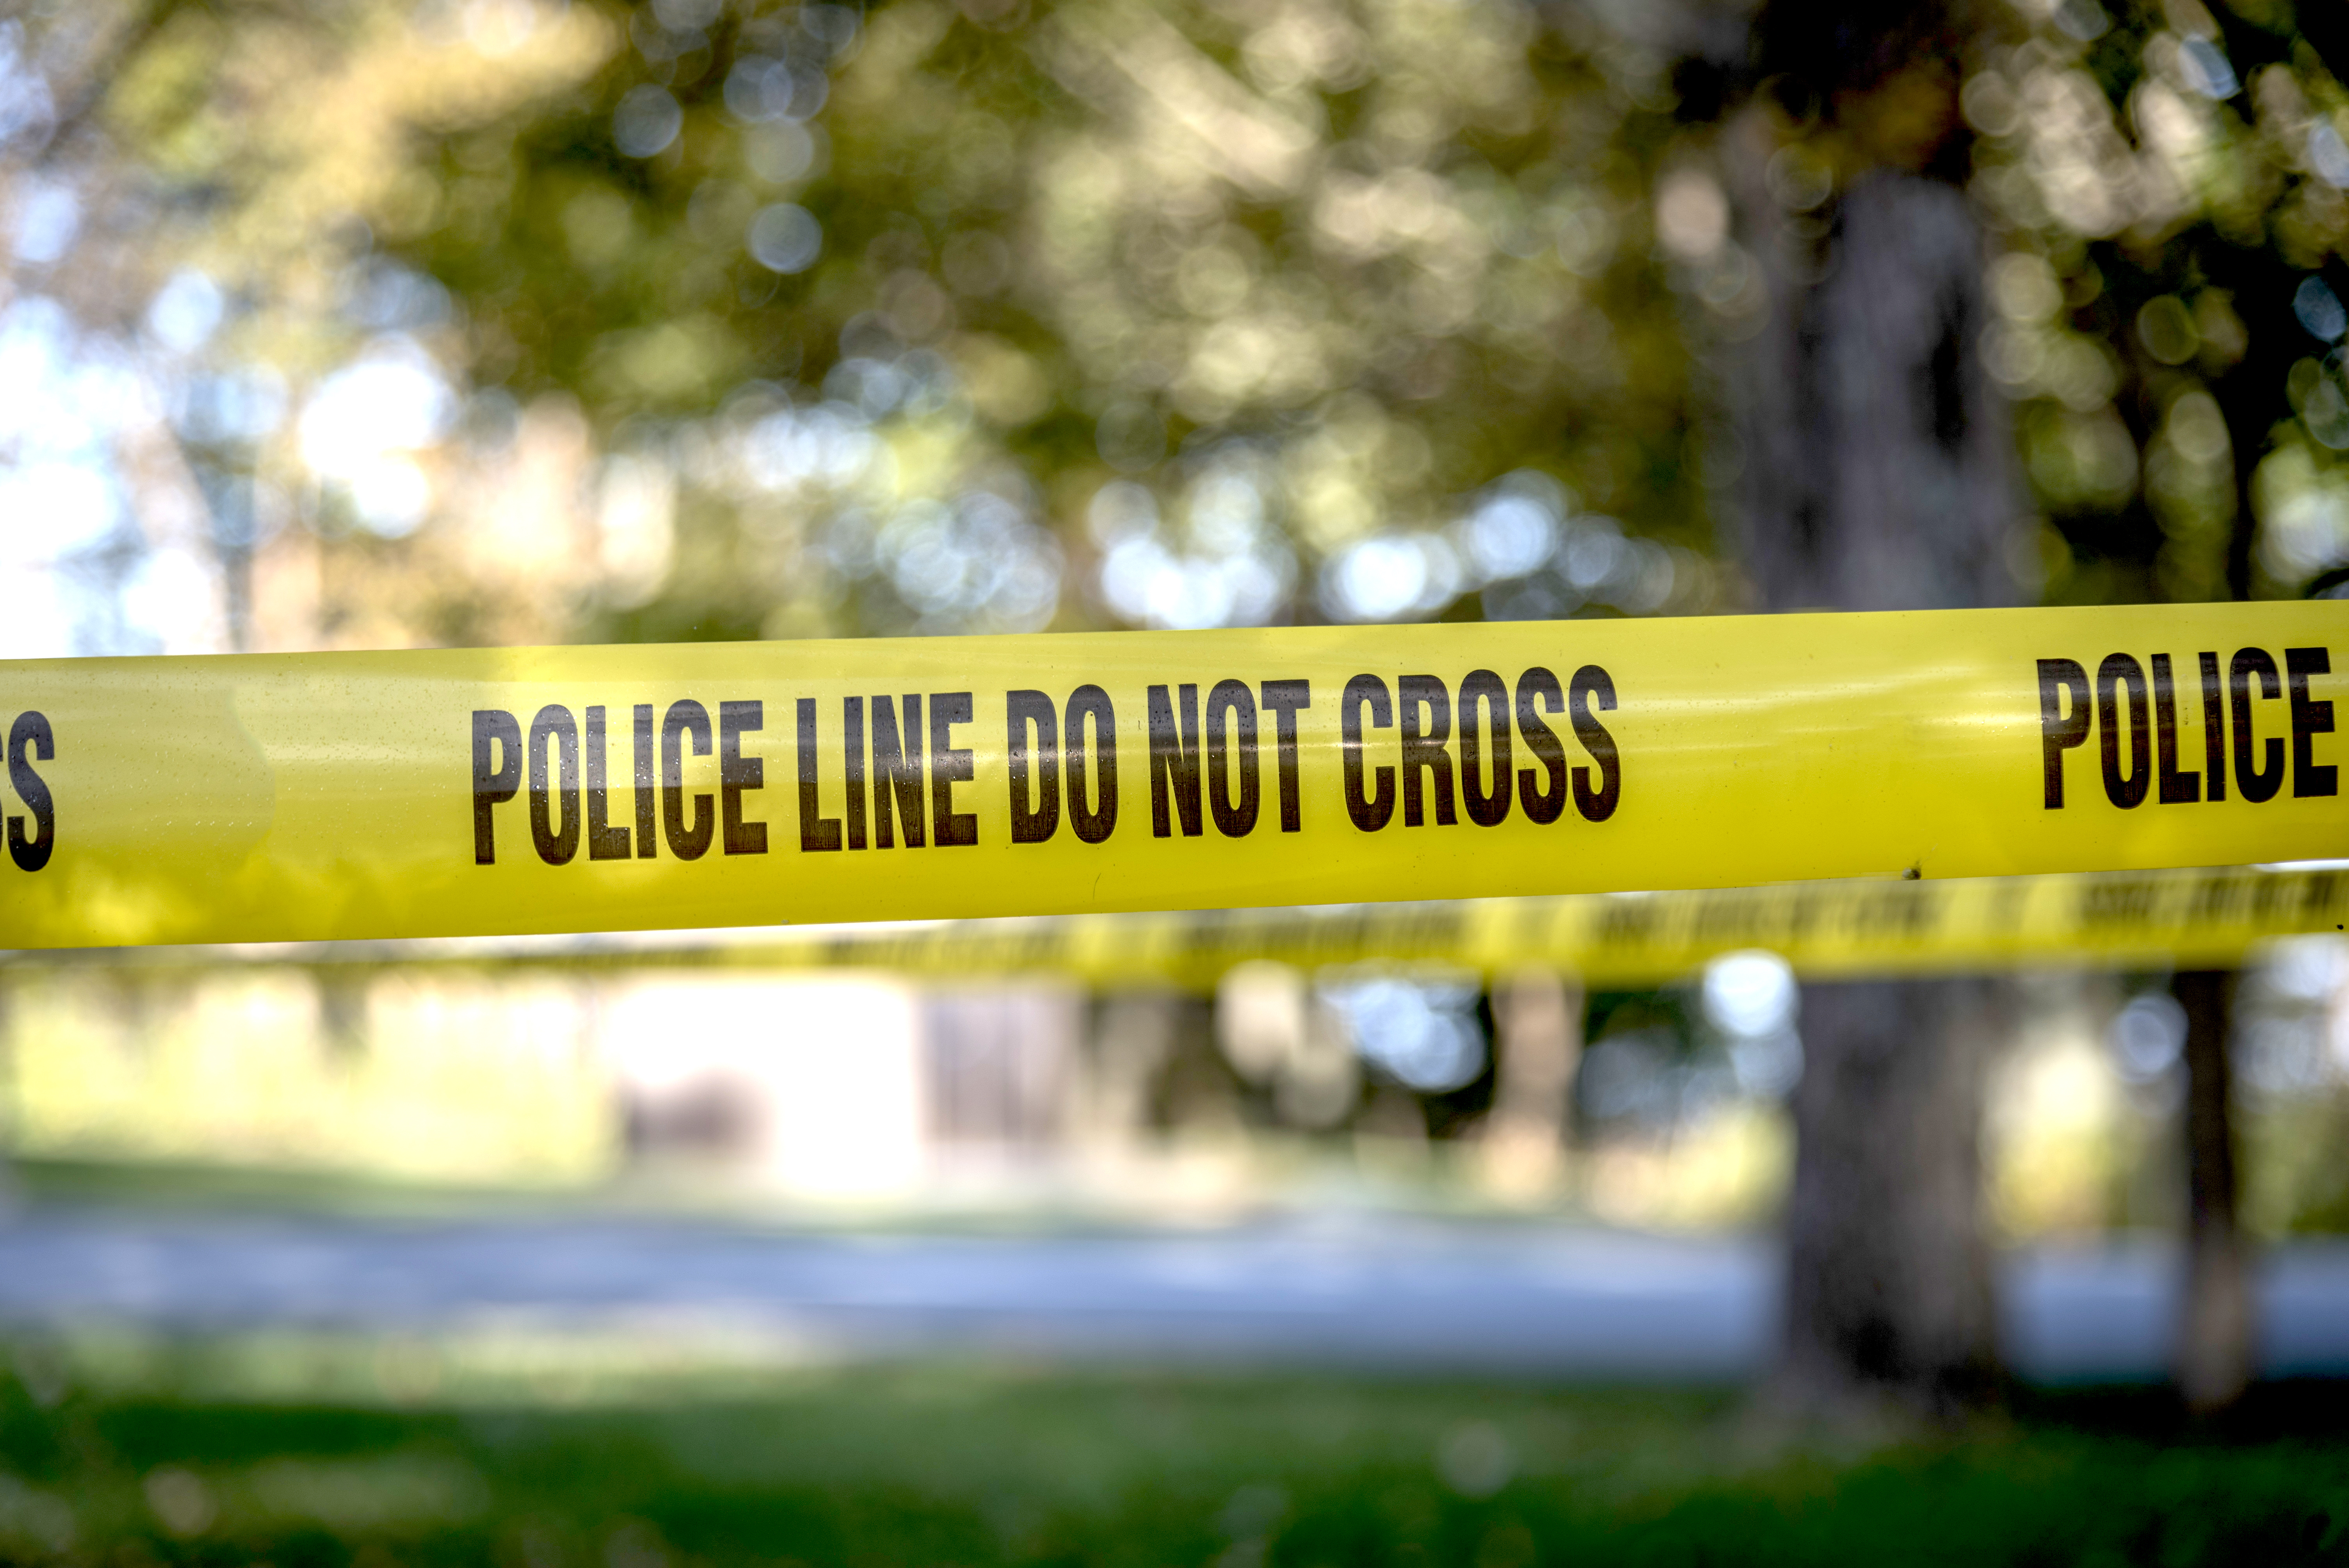 Two men and were killed and one wounded September 21, 2019 in an attempted robbery turned violent in Roseland on the Far South Side.